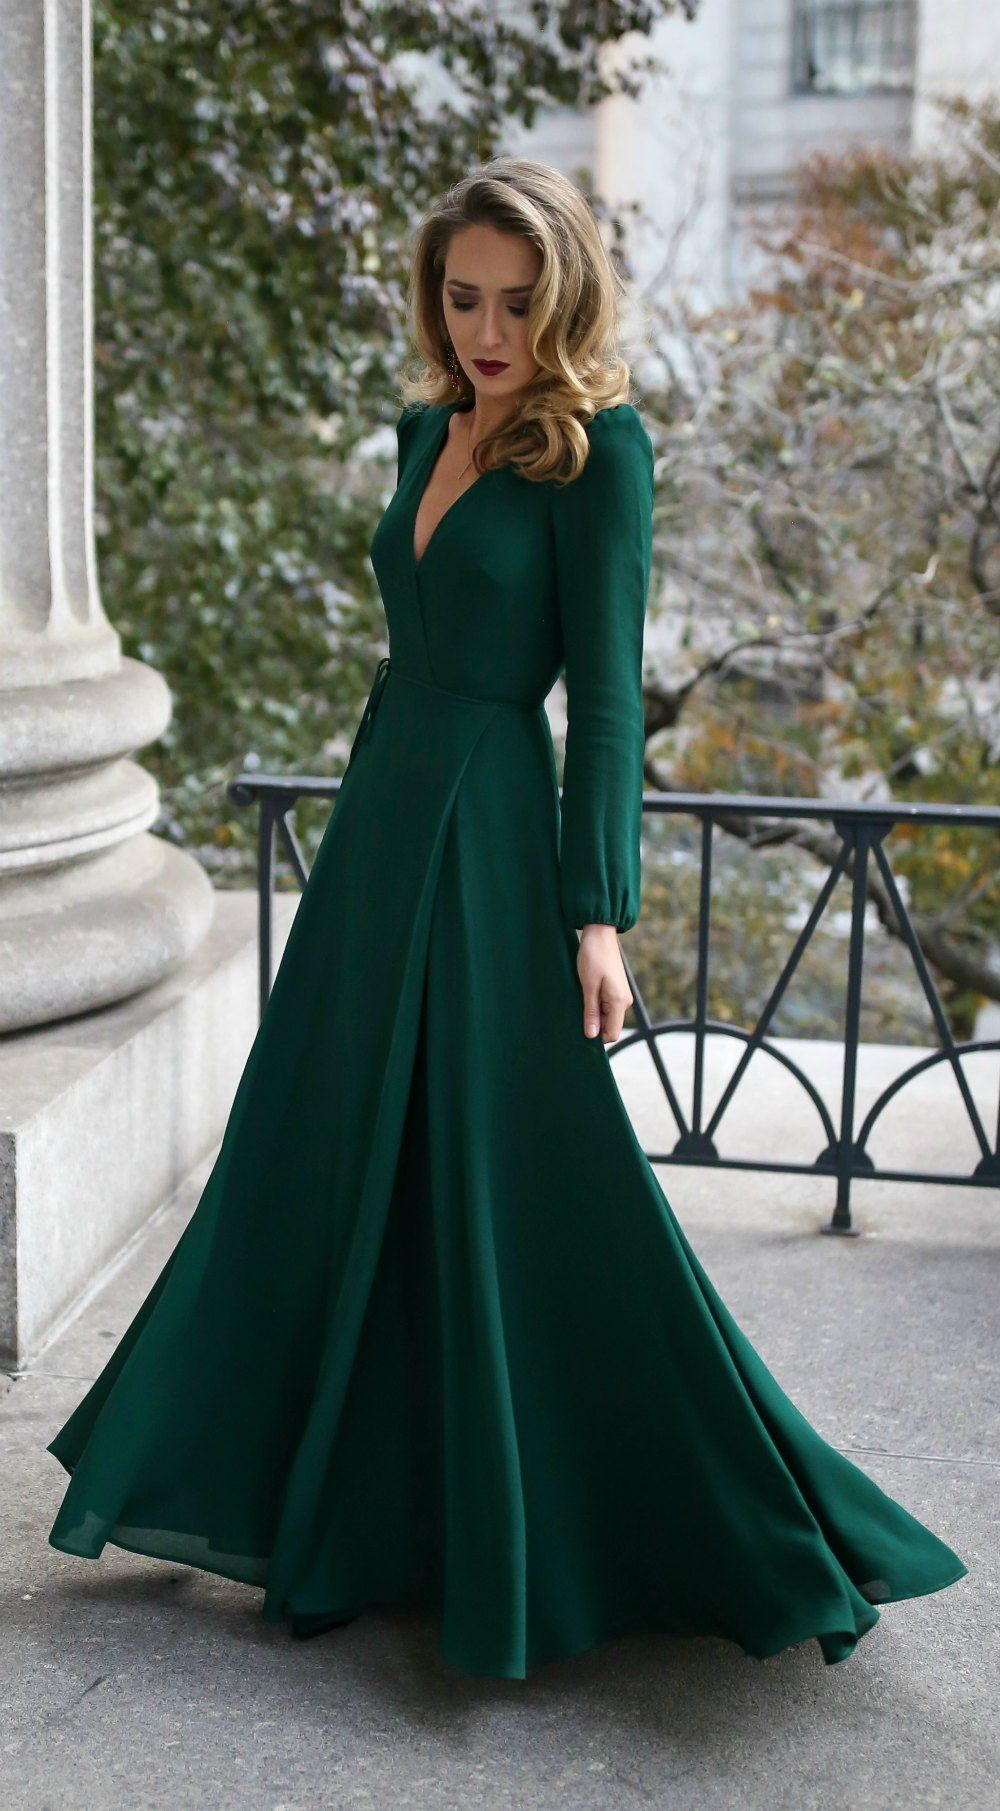 30 DRESSES IN 30 DAYS Black Tie Wedding Guest // Emerald